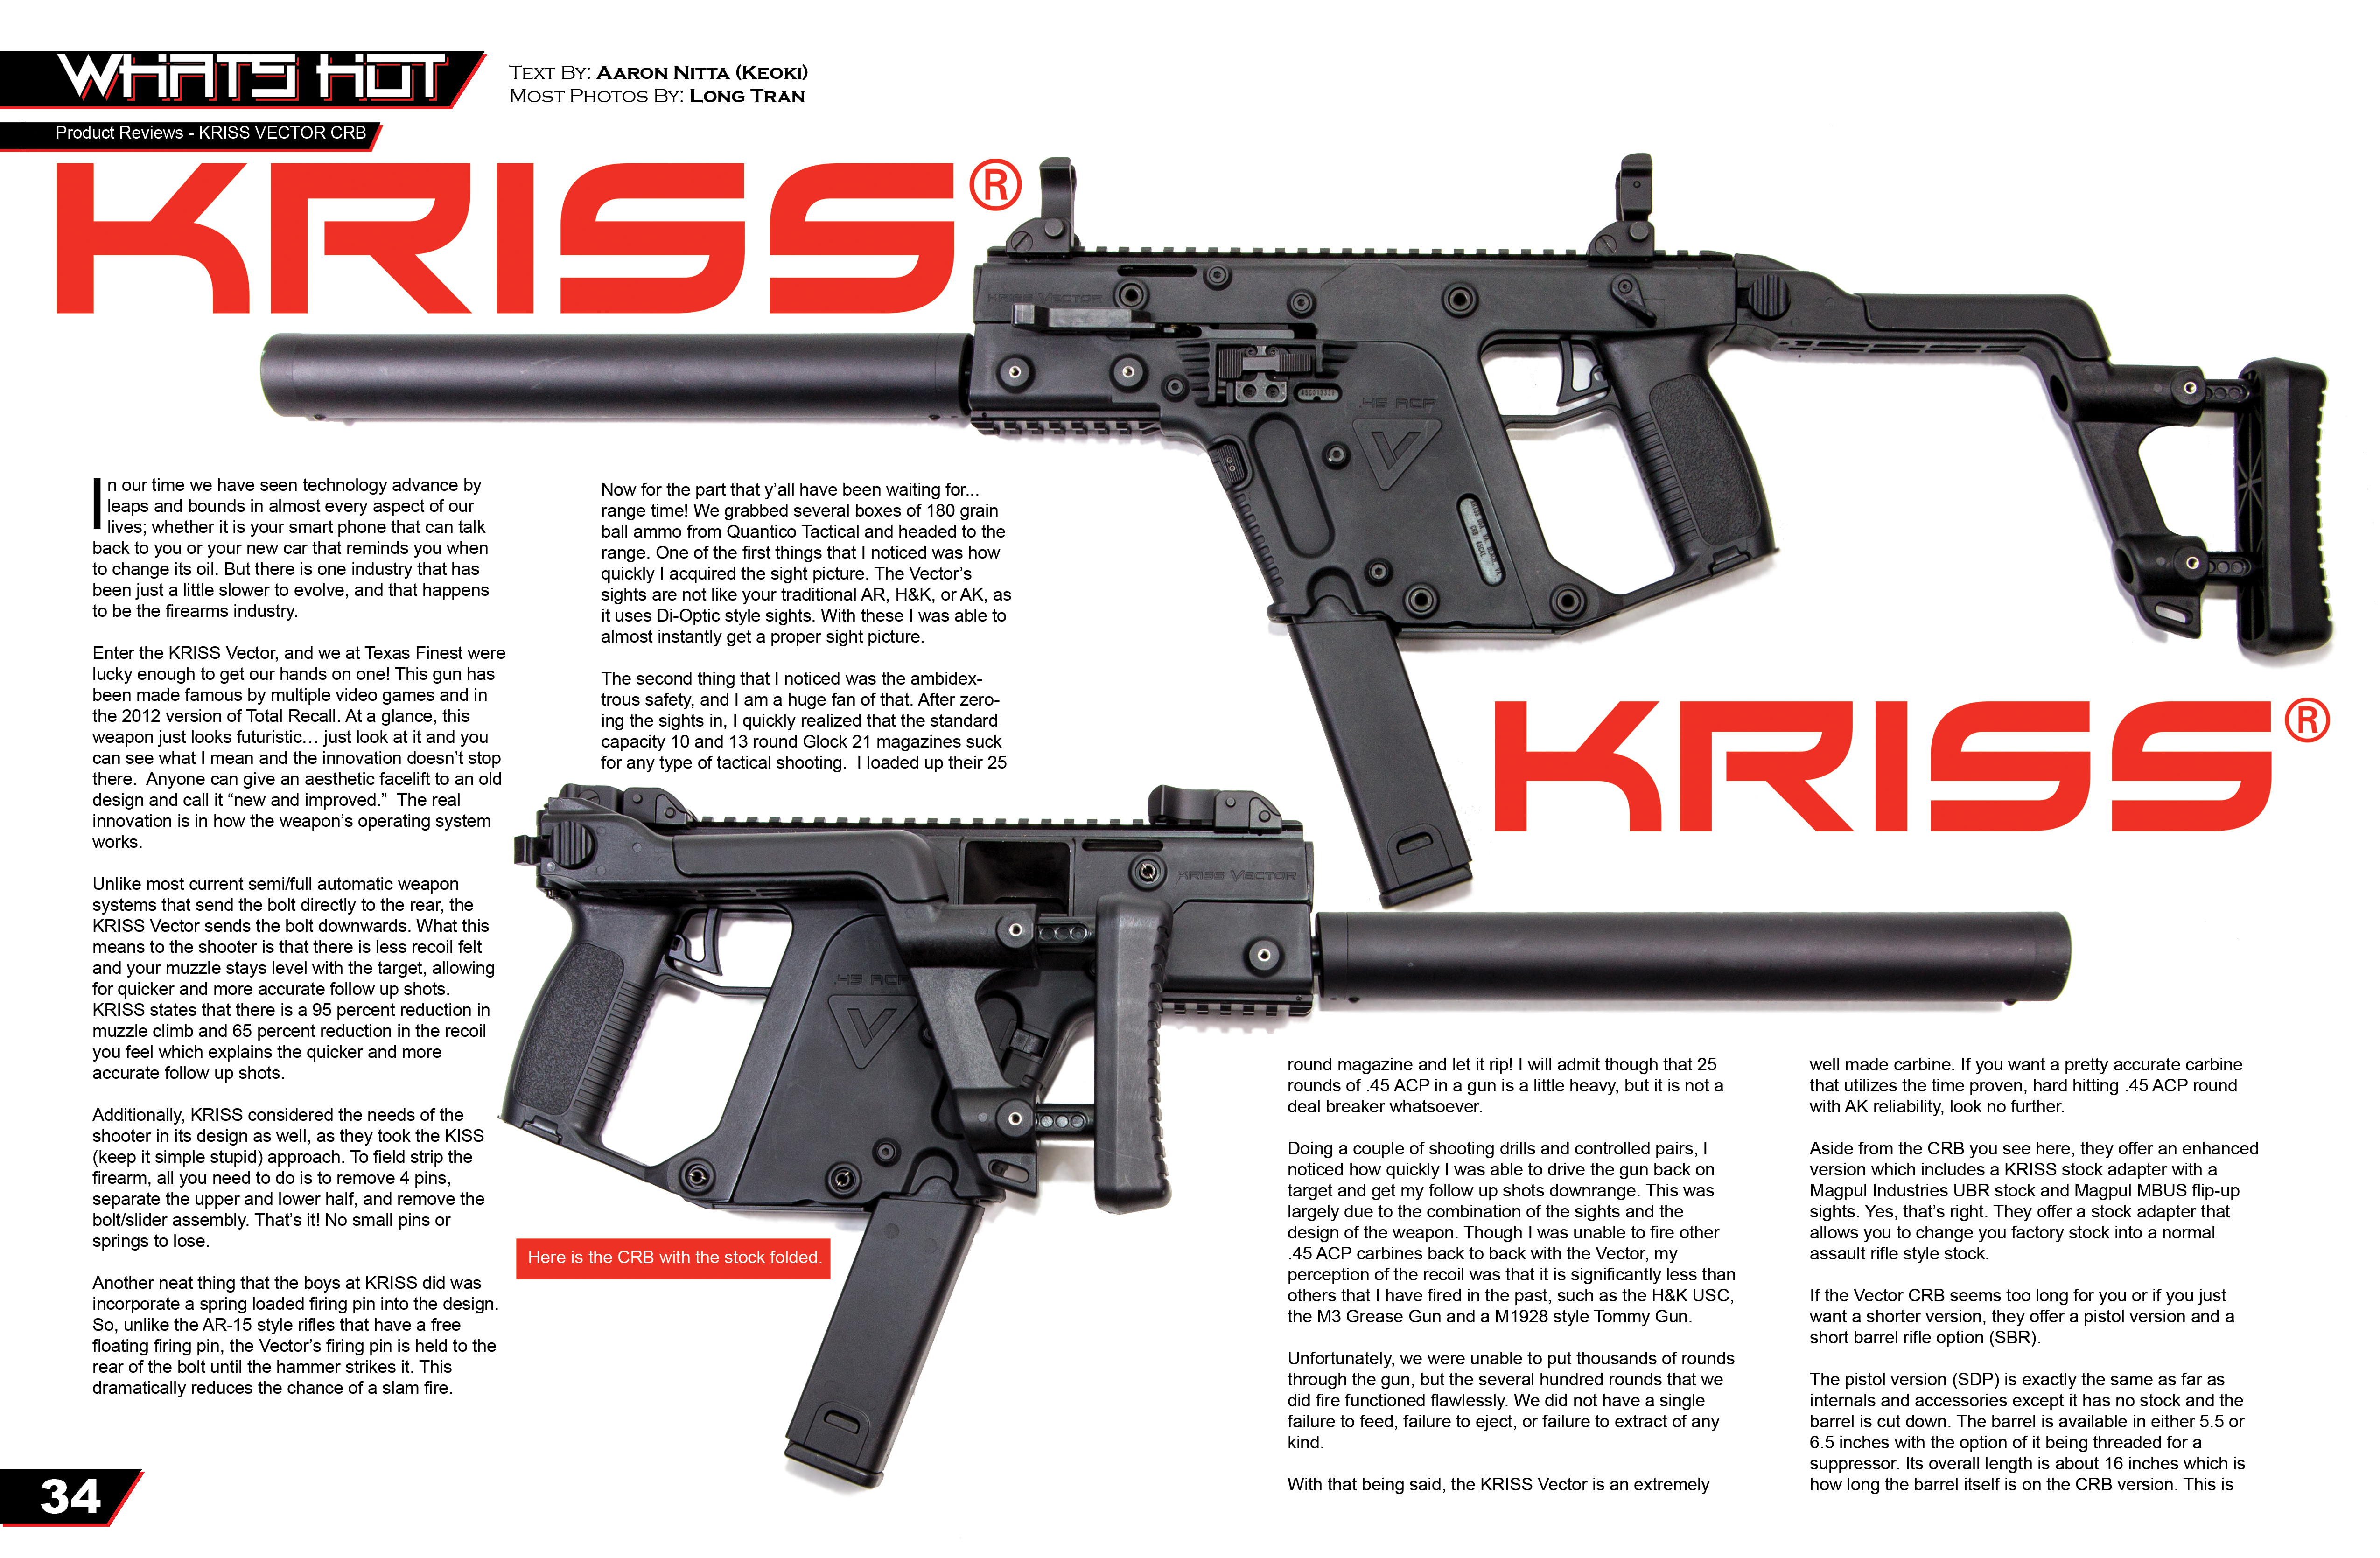 KRISS USA VECTOR Product Review